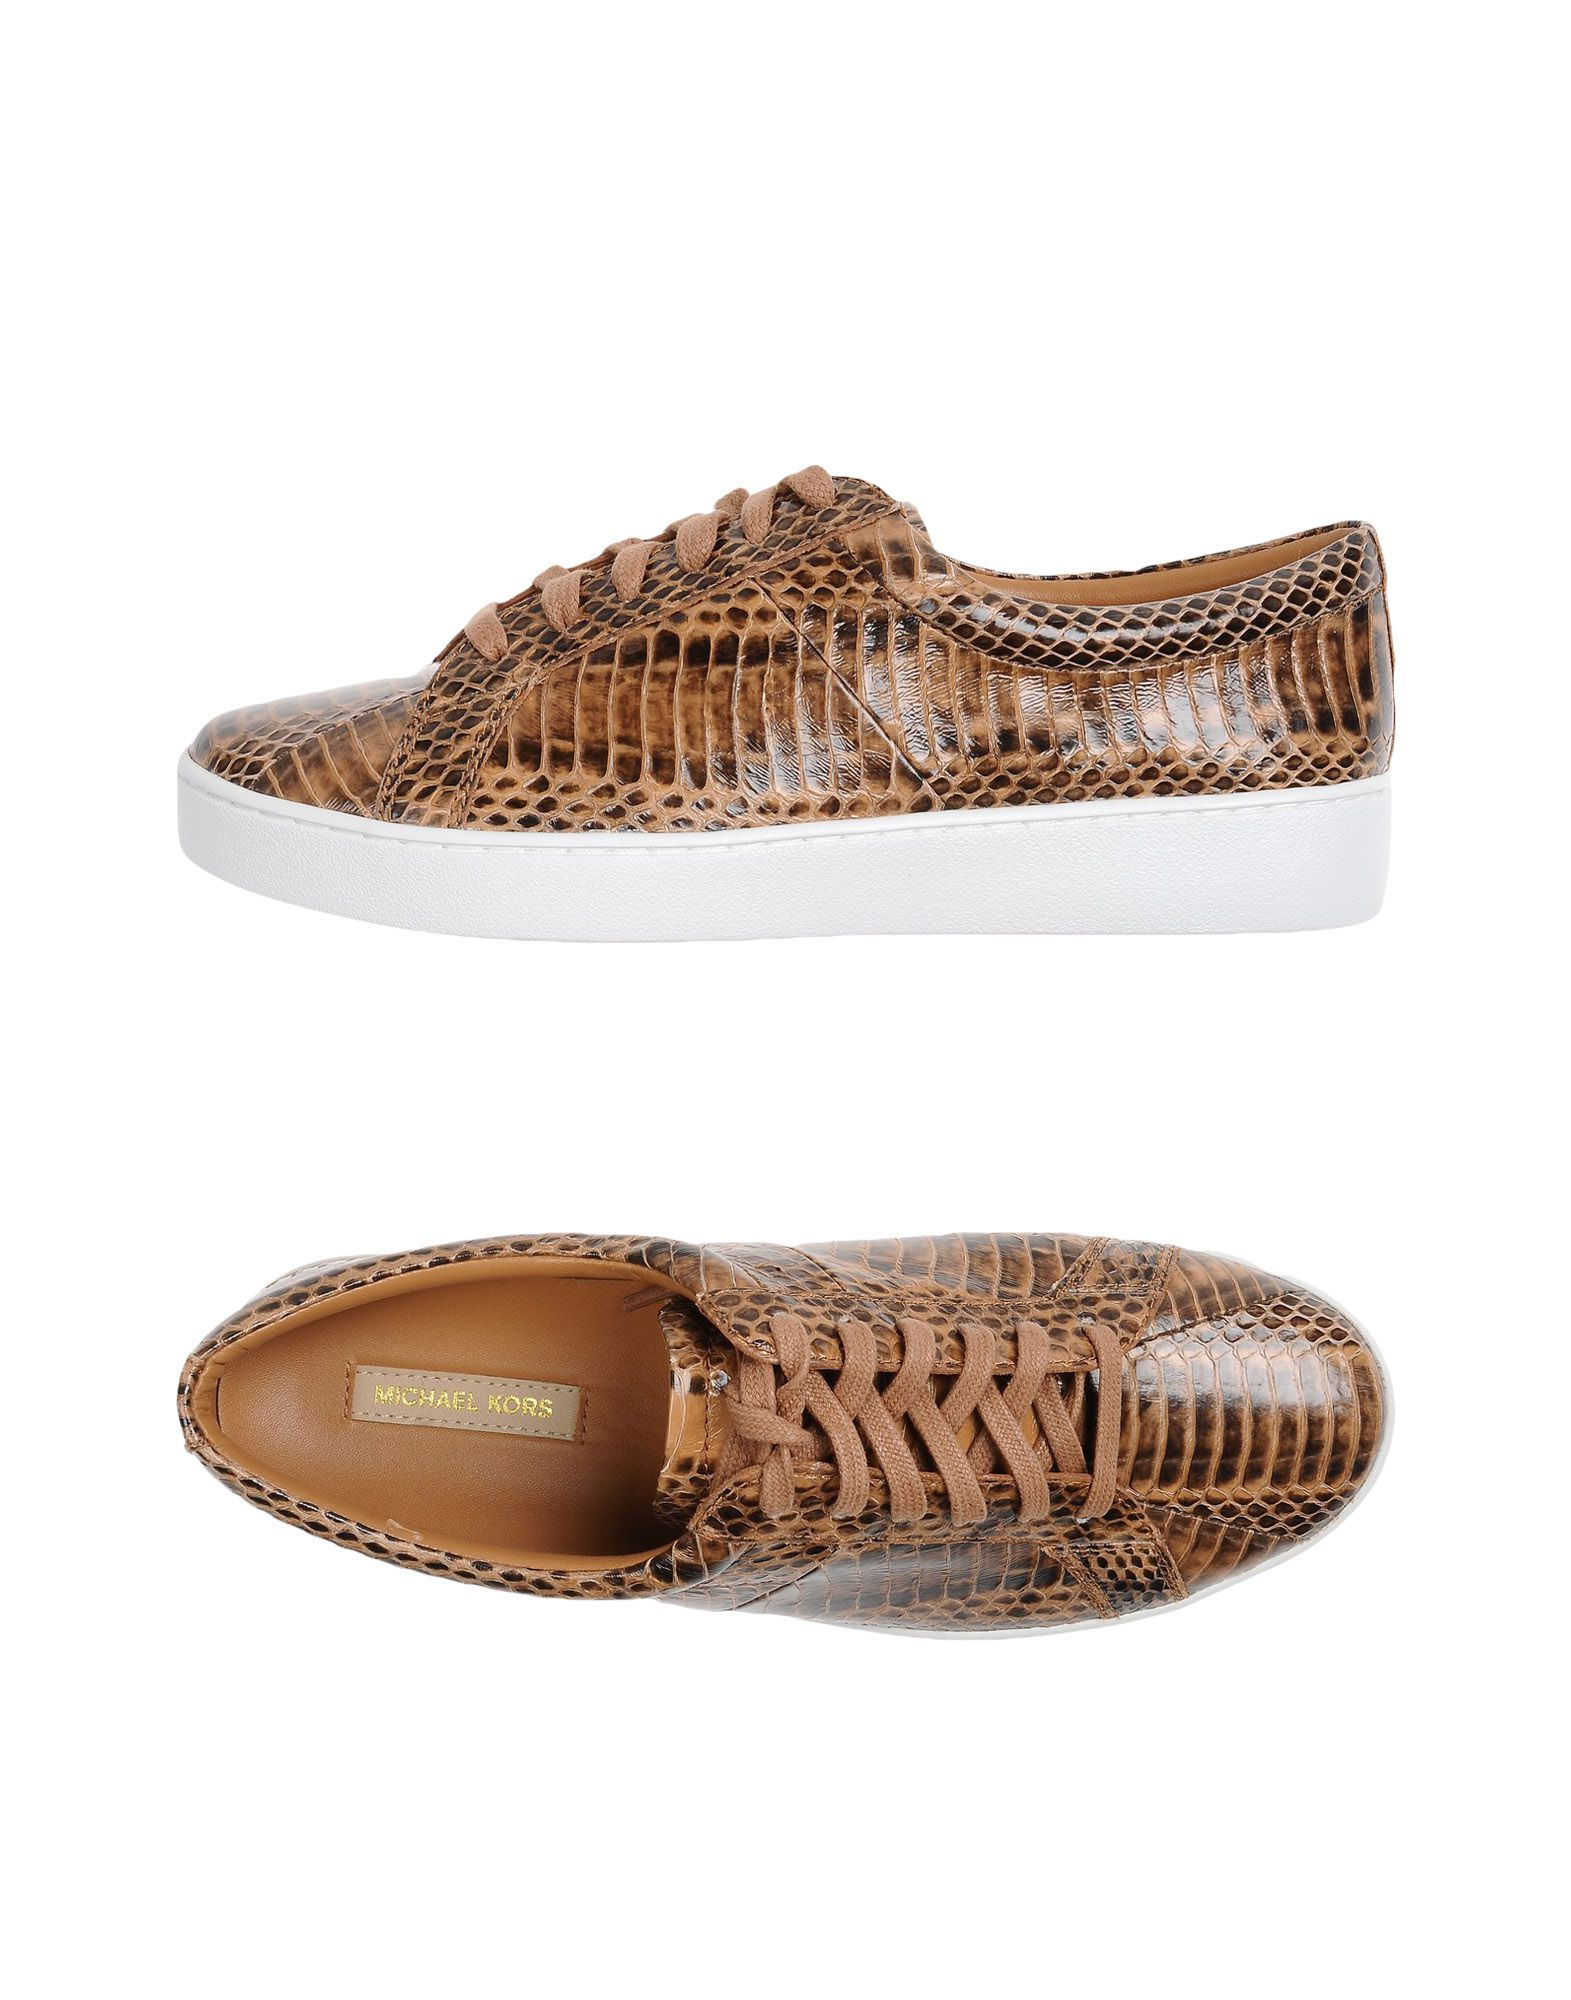 michael kors female michael kors sneakers